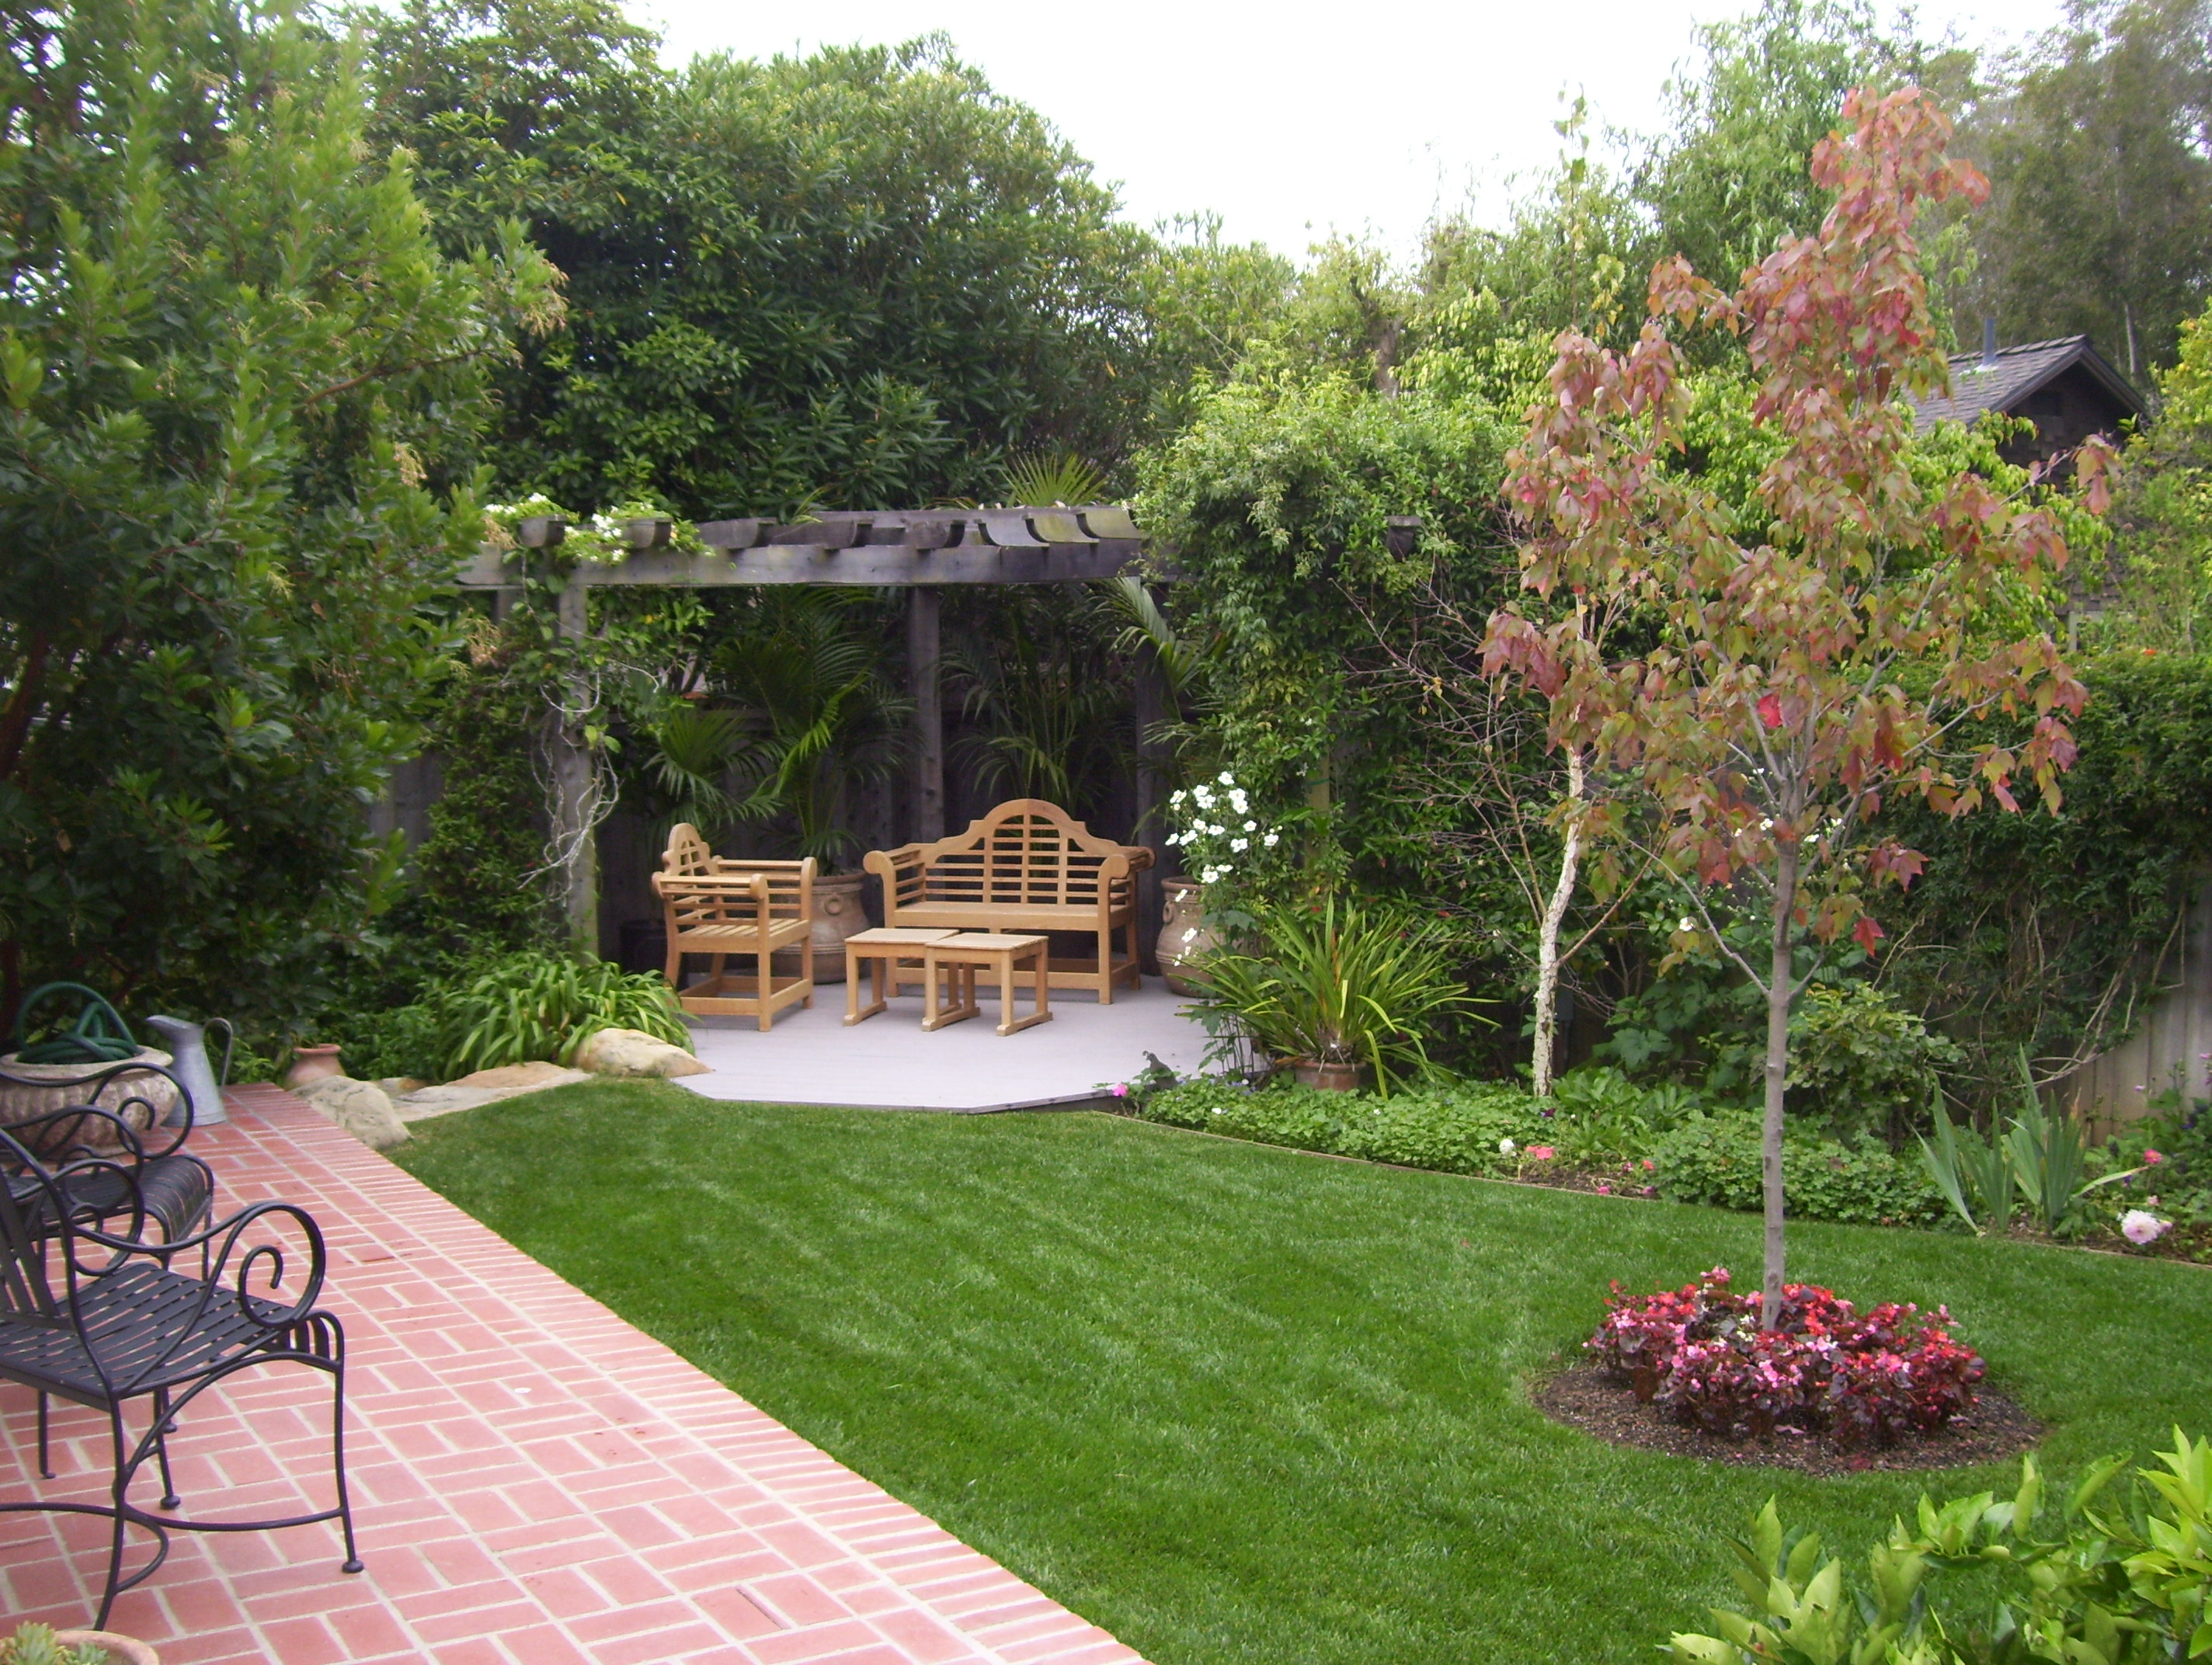 Backyard landscaping ideas santa barbara down to earth for Exterior garden designs